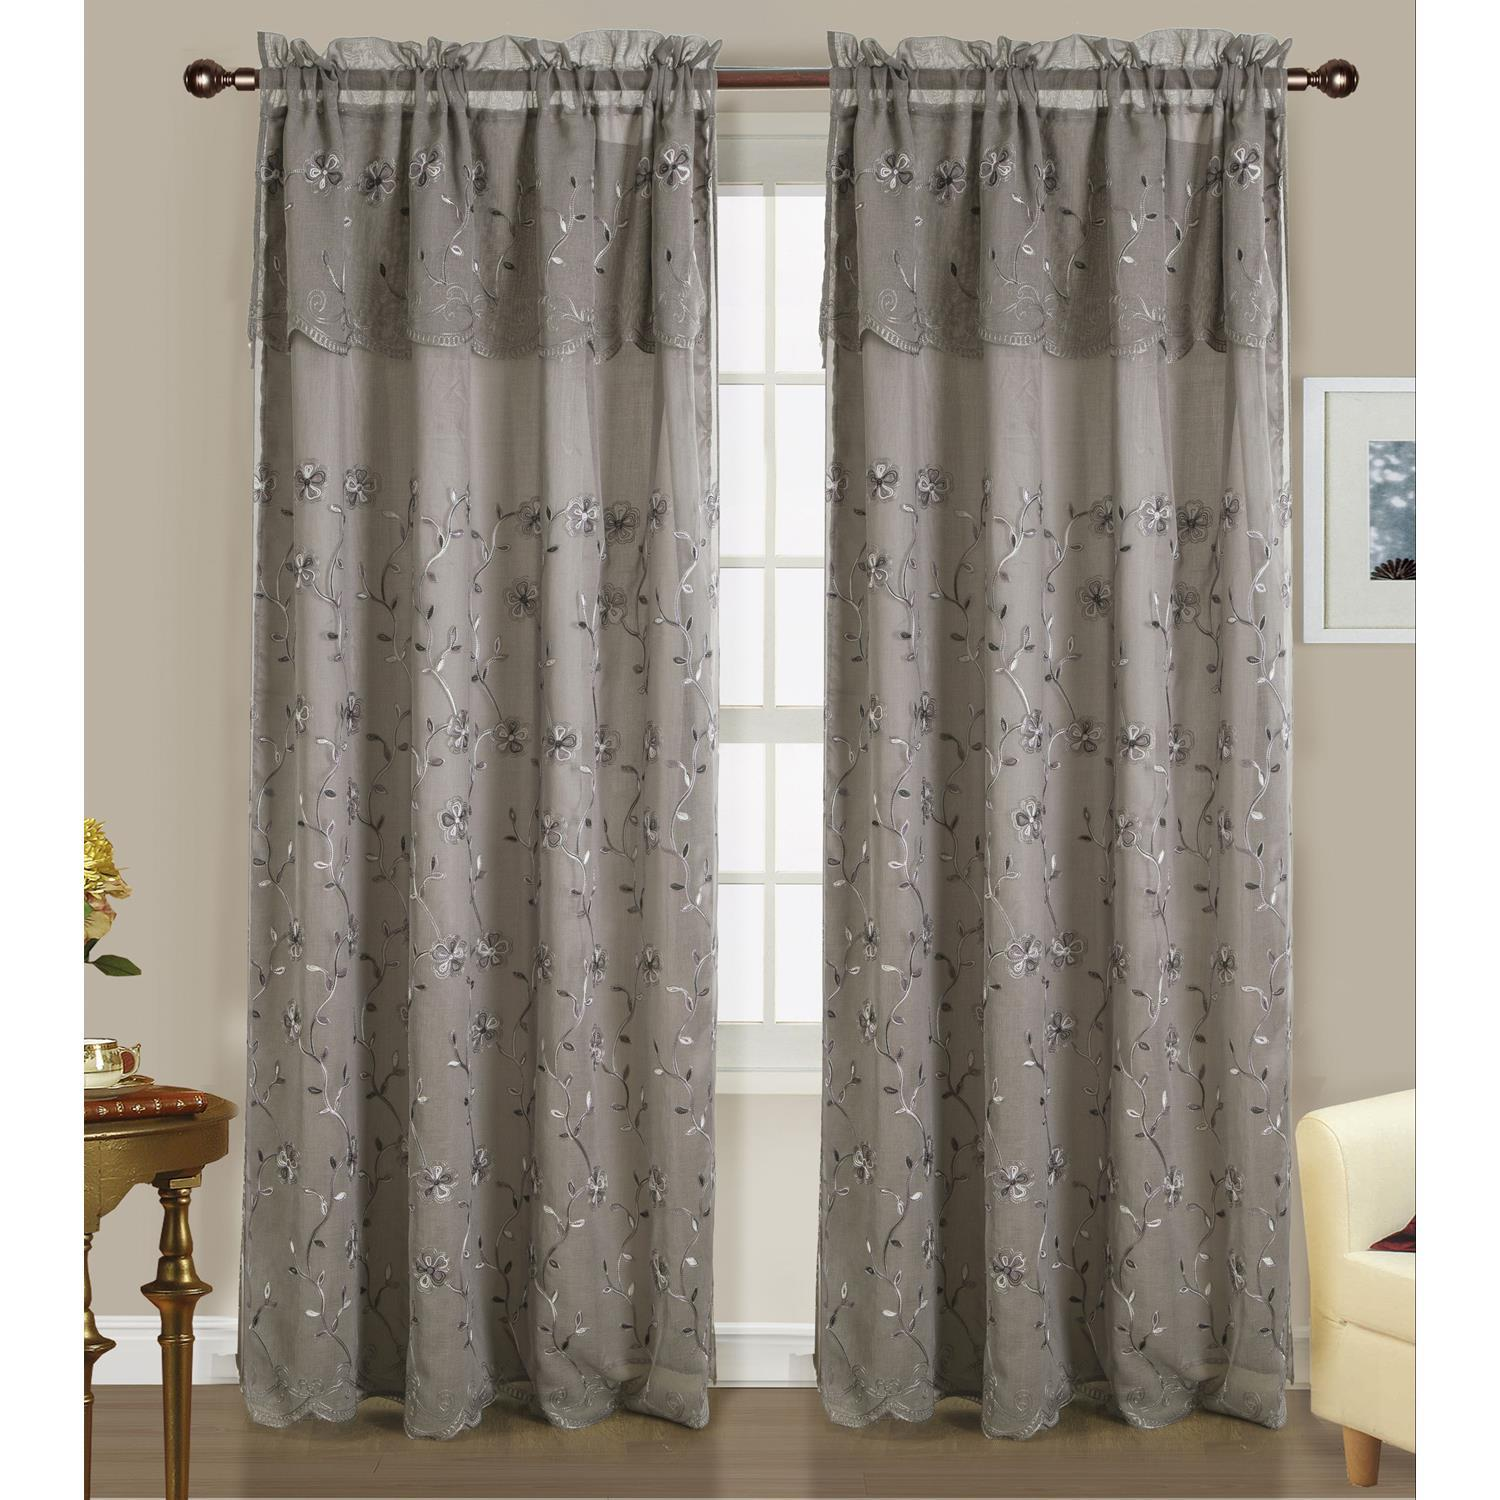 Easton Double Rod Pocket Curtain Panel 54 X 84 18 Attached Valance